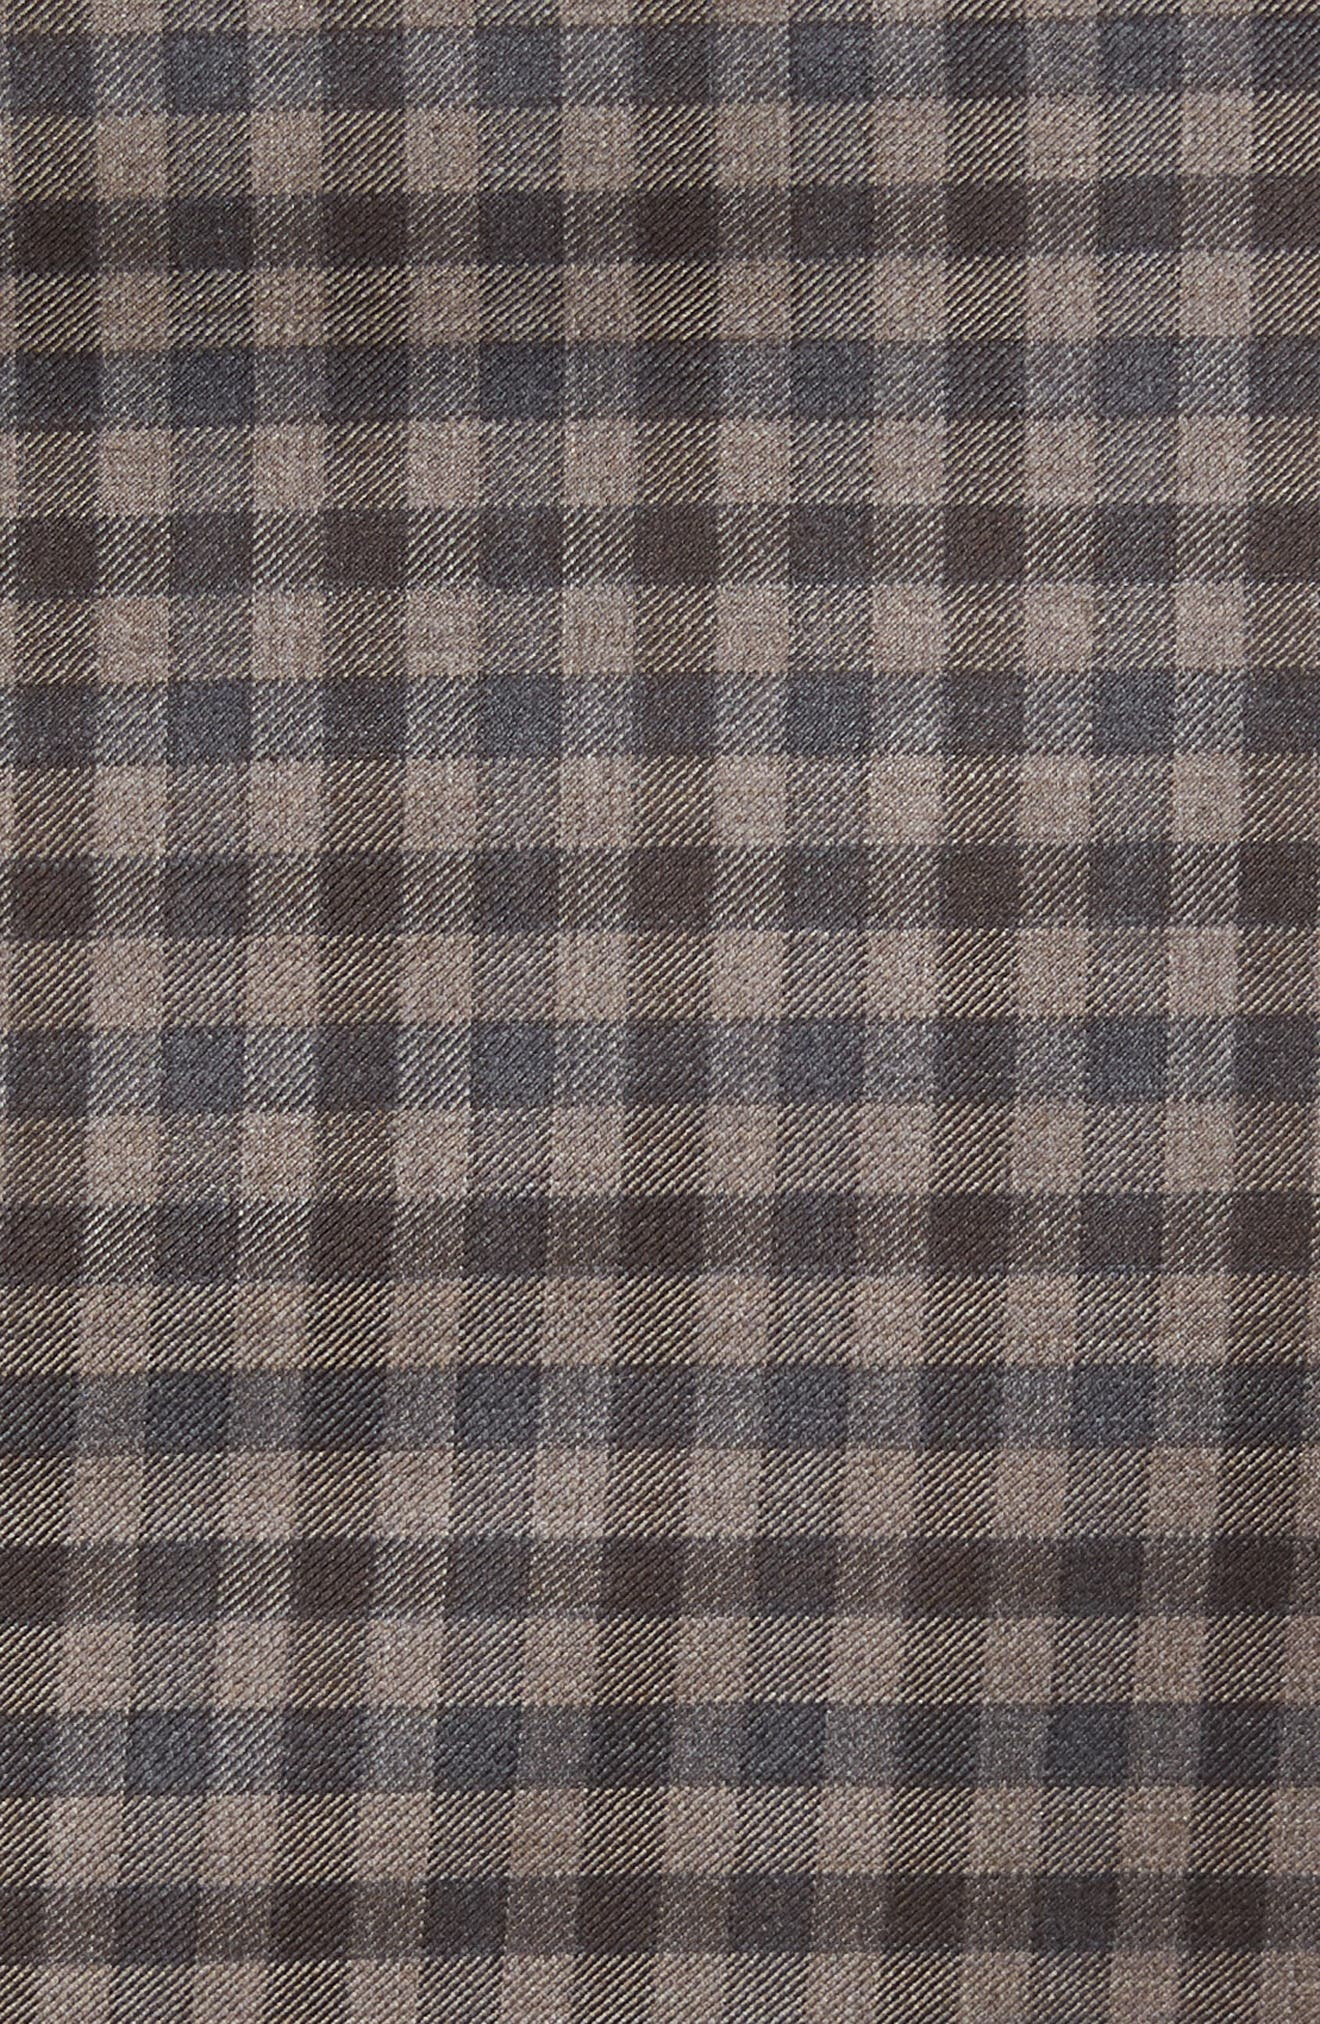 Classic Fit Check Wool Sport Coat,                             Alternate thumbnail 5, color,                             Brown/Grey